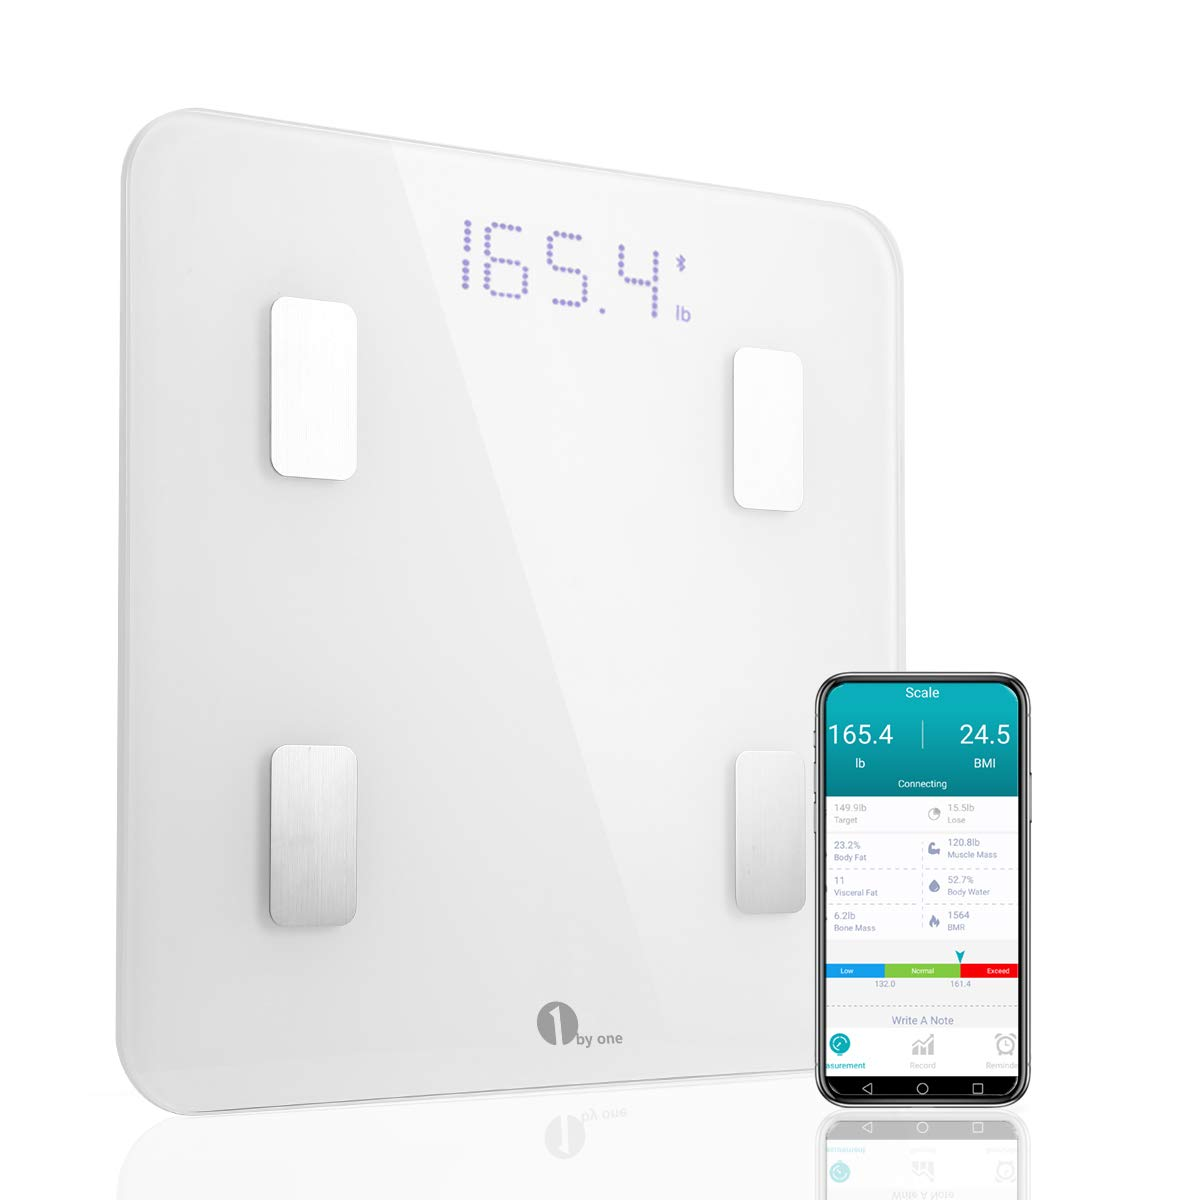 1byone Bluetooth Smart Body Fat Scale with iOS and Android App, Accurate Health Metrics, Body Composition & Weight Measurements, White